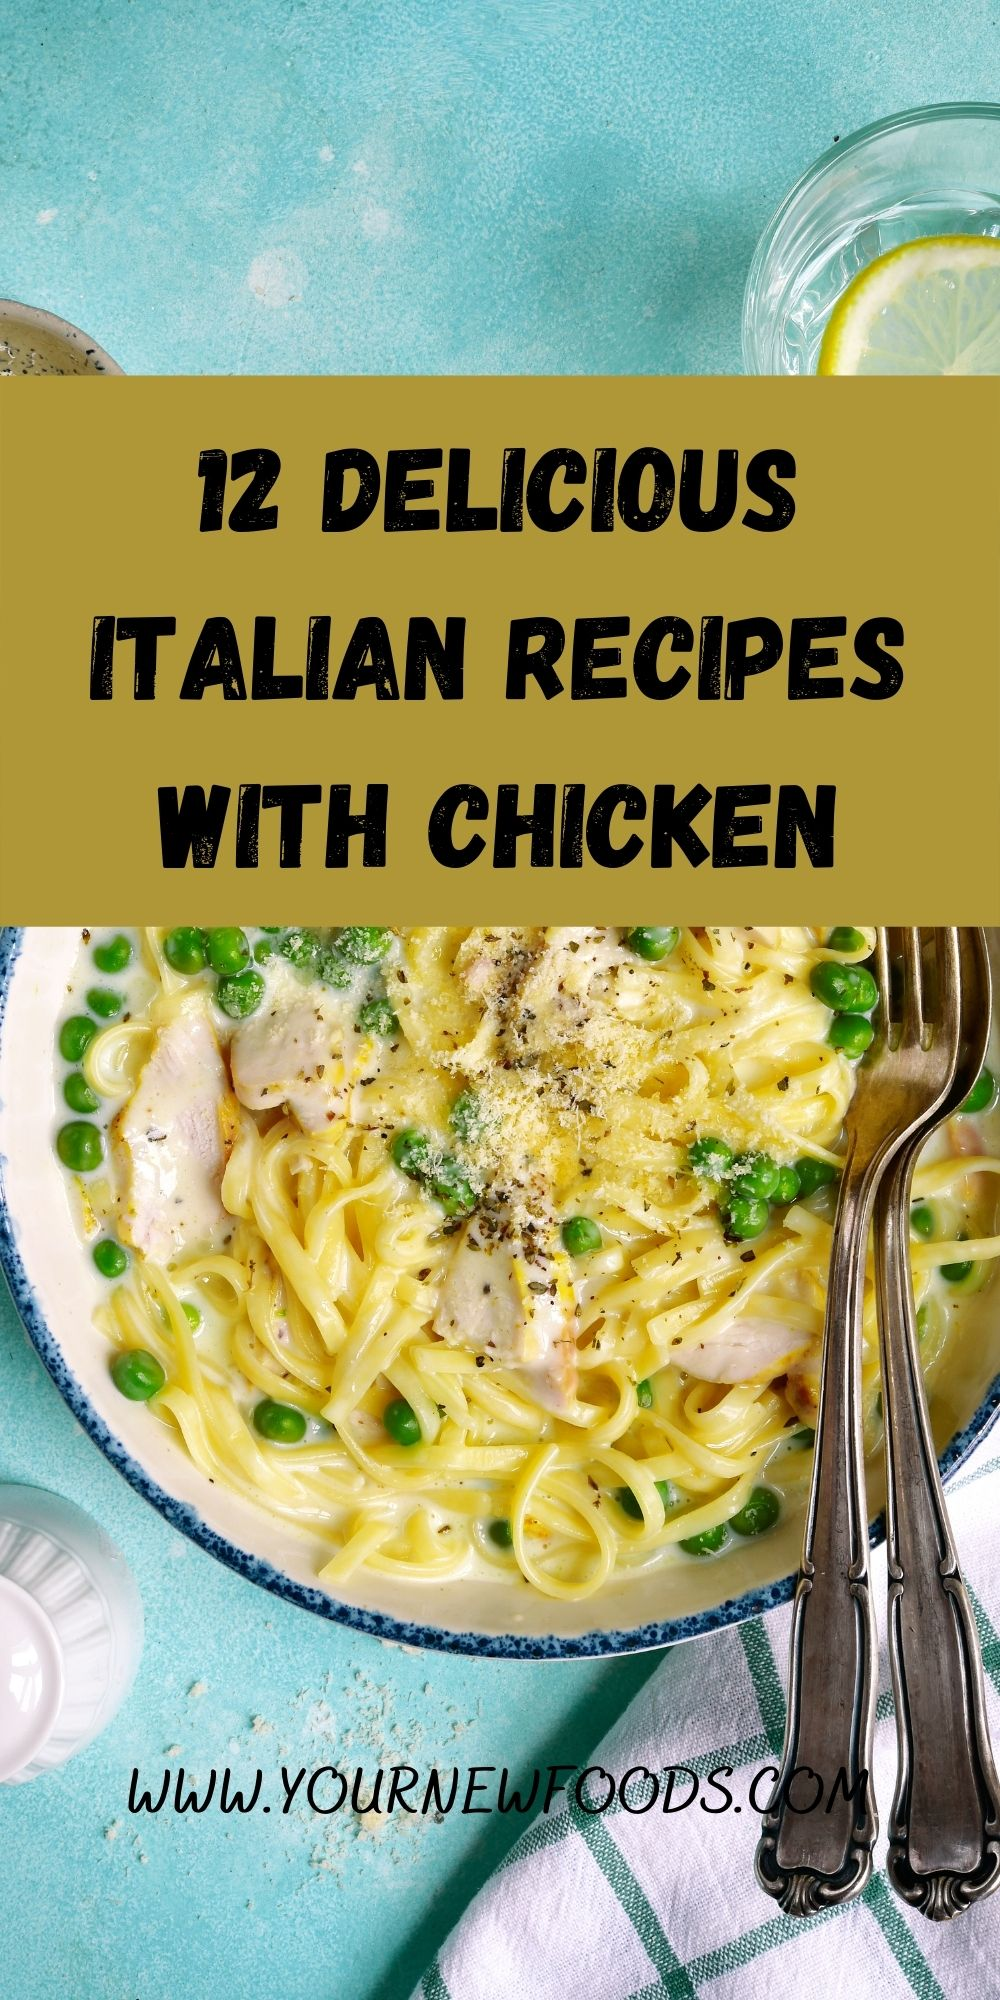 Italian recipes with Chicken carbonara in a white bowl on a blue surface